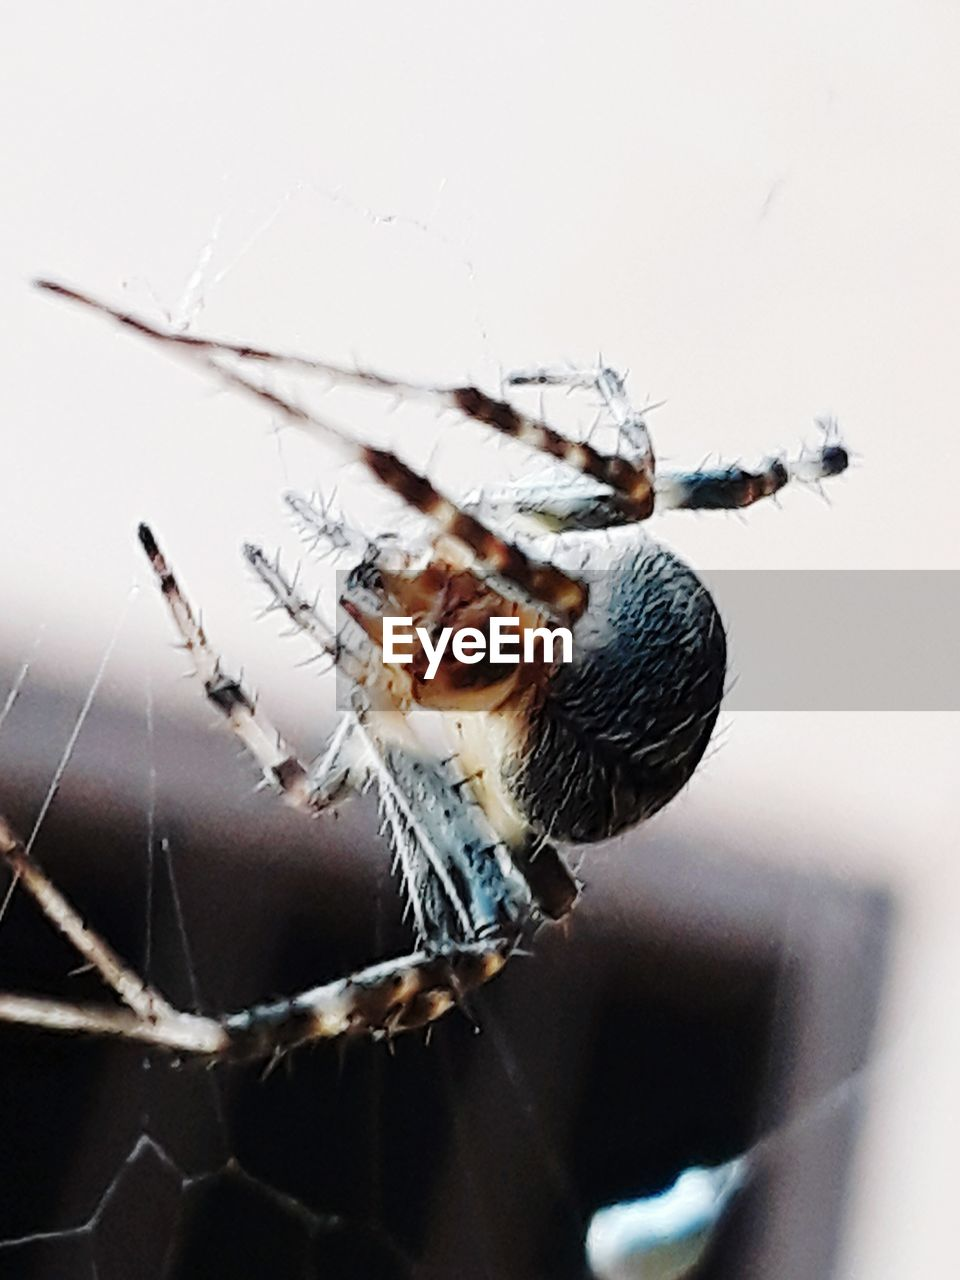 insect, invertebrate, animal themes, one animal, animals in the wild, animal wildlife, animal, close-up, spider, arthropod, arachnid, spider web, focus on foreground, fragility, no people, day, zoology, selective focus, animal wing, macro, outdoors, animal leg